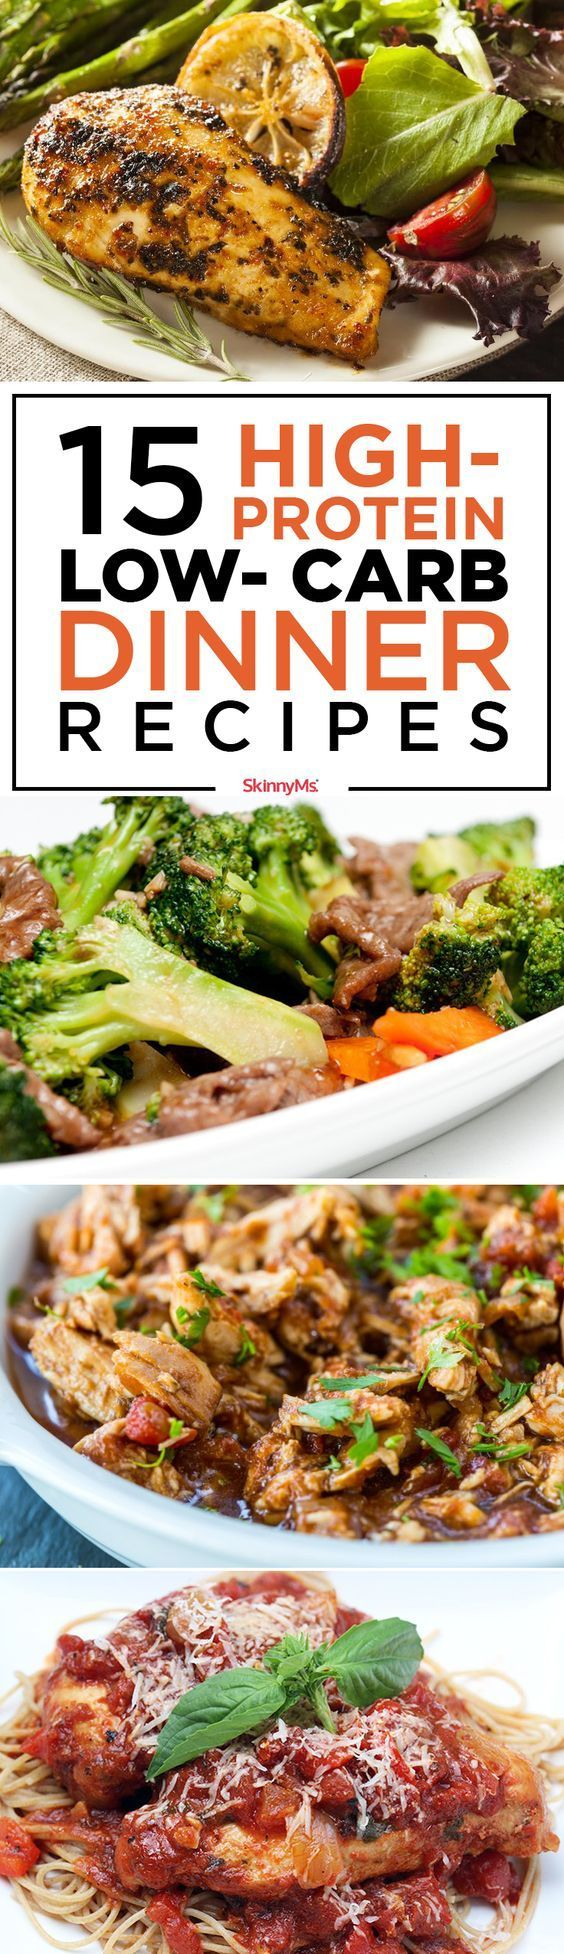 666 best food roundups and lists images on pinterest for Healthy recipes for dinner low carb